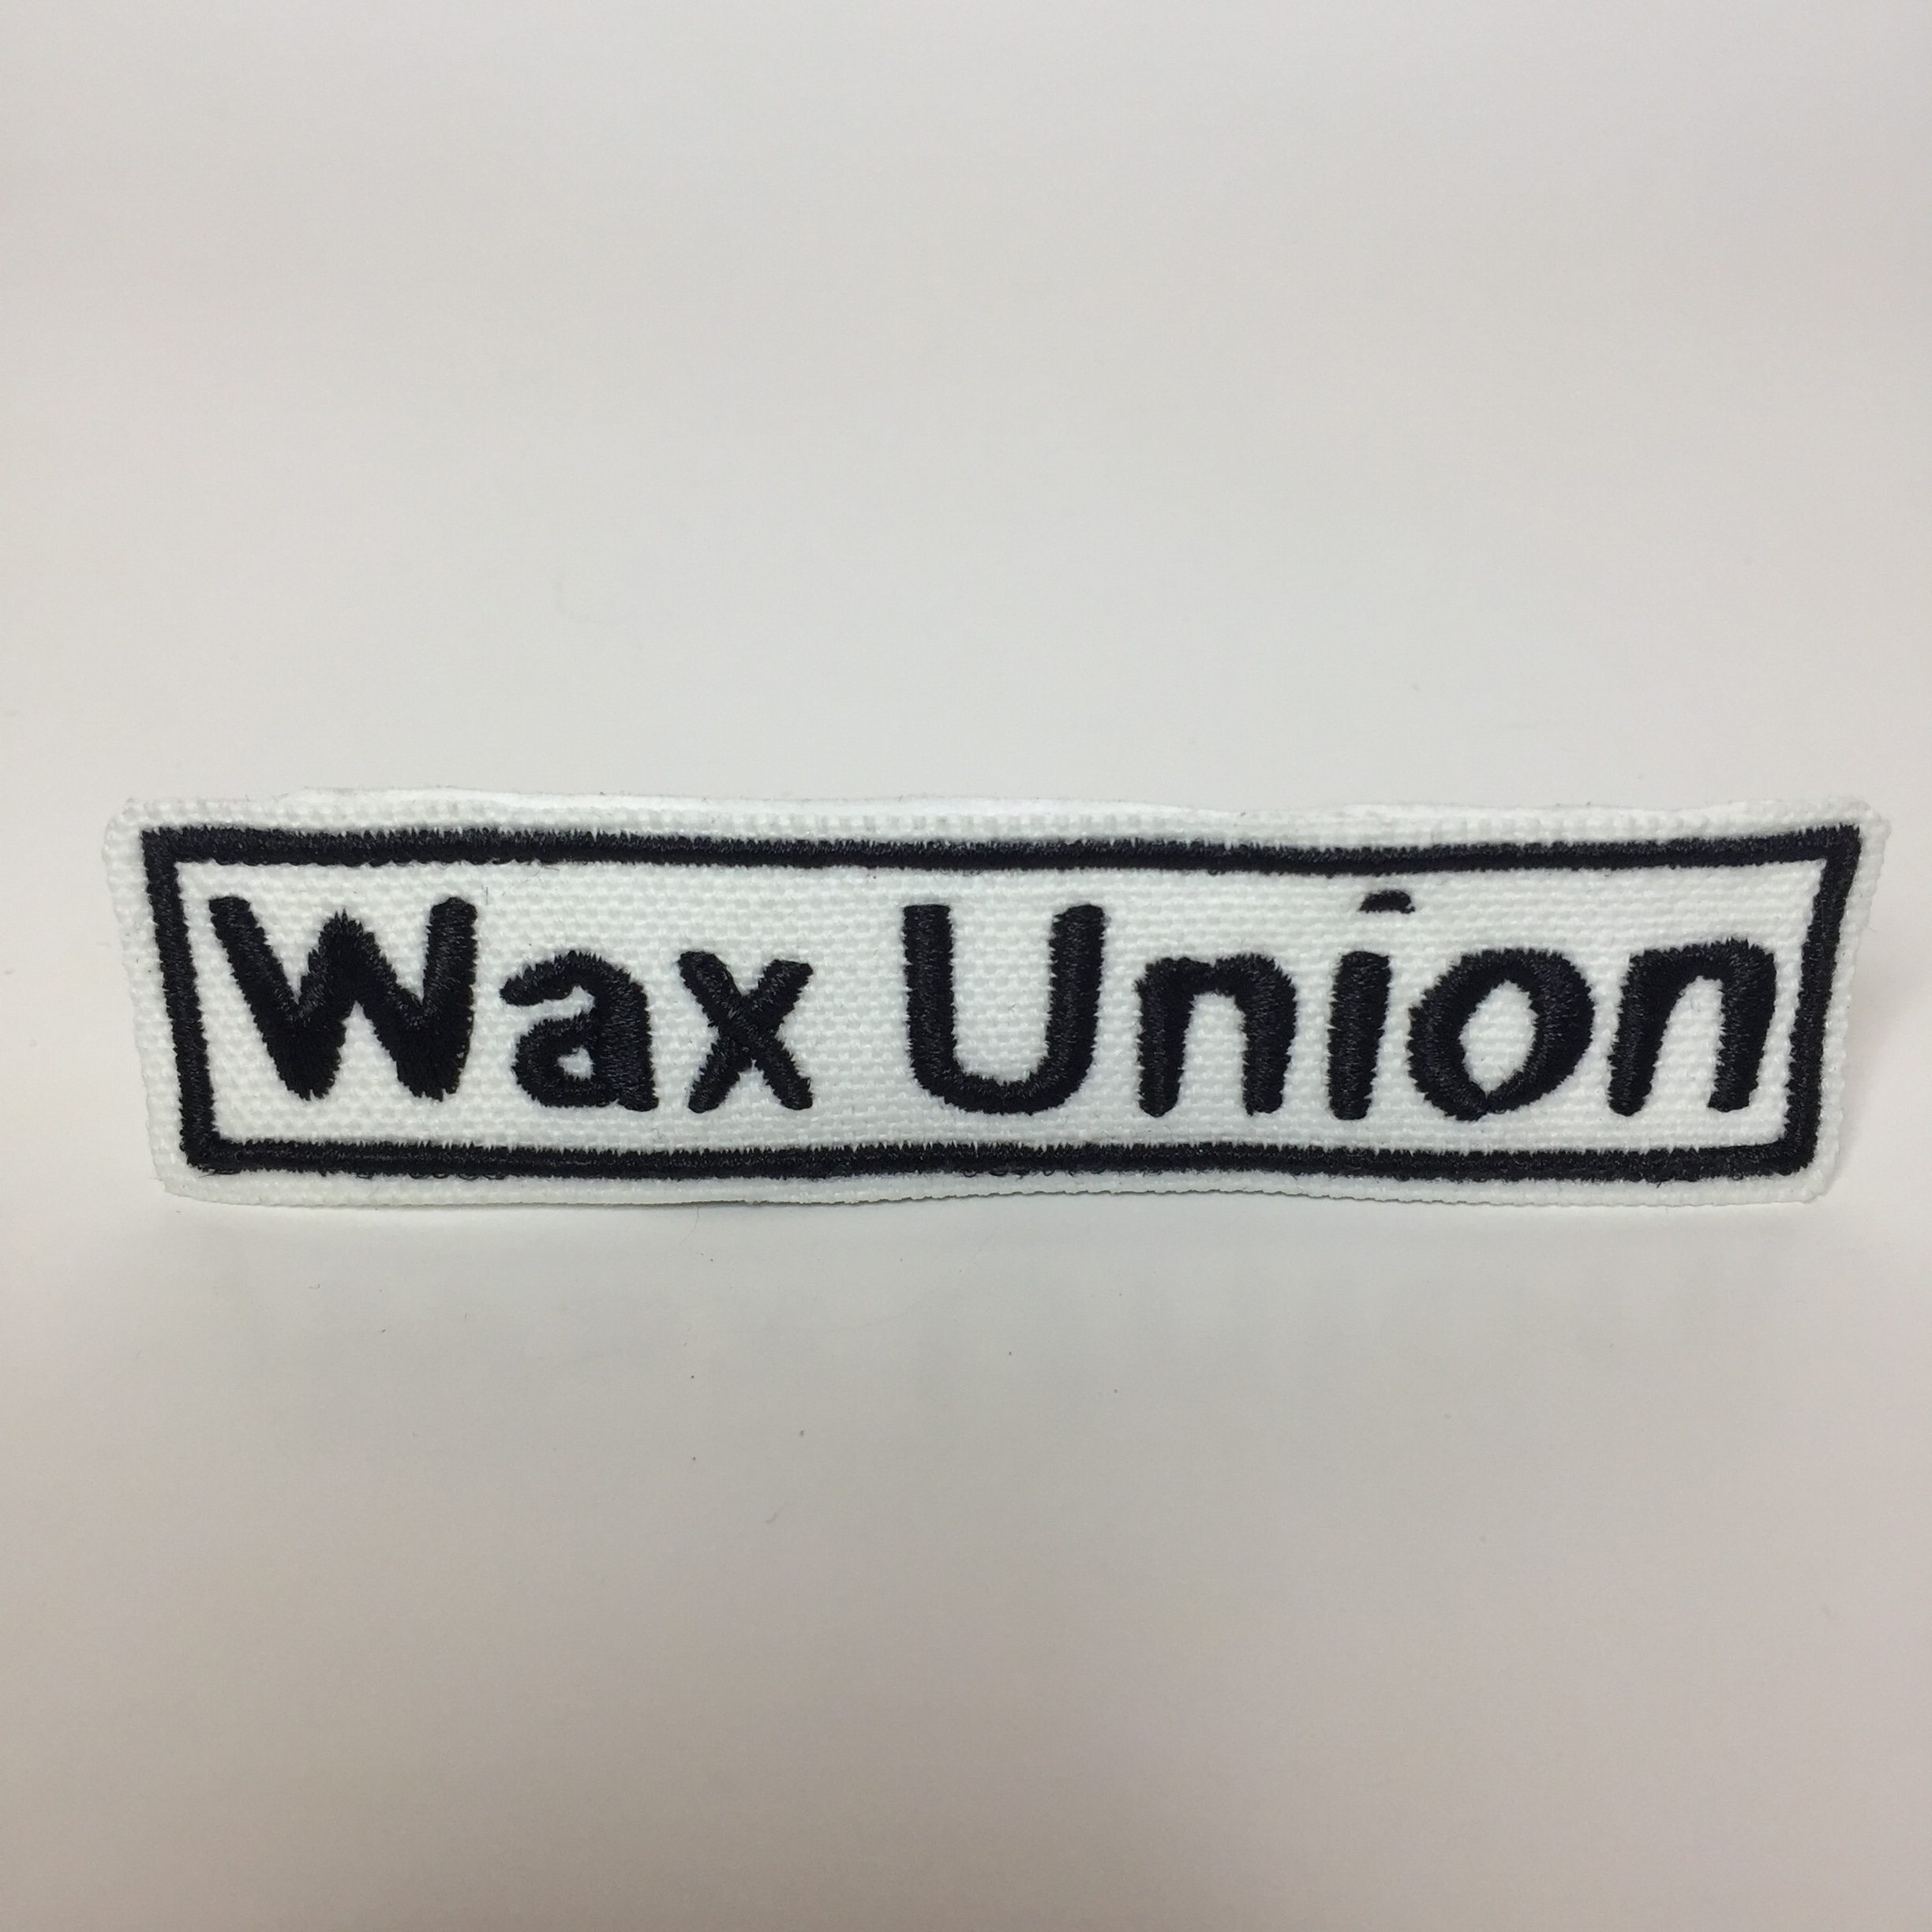 Wax Union Text Patch